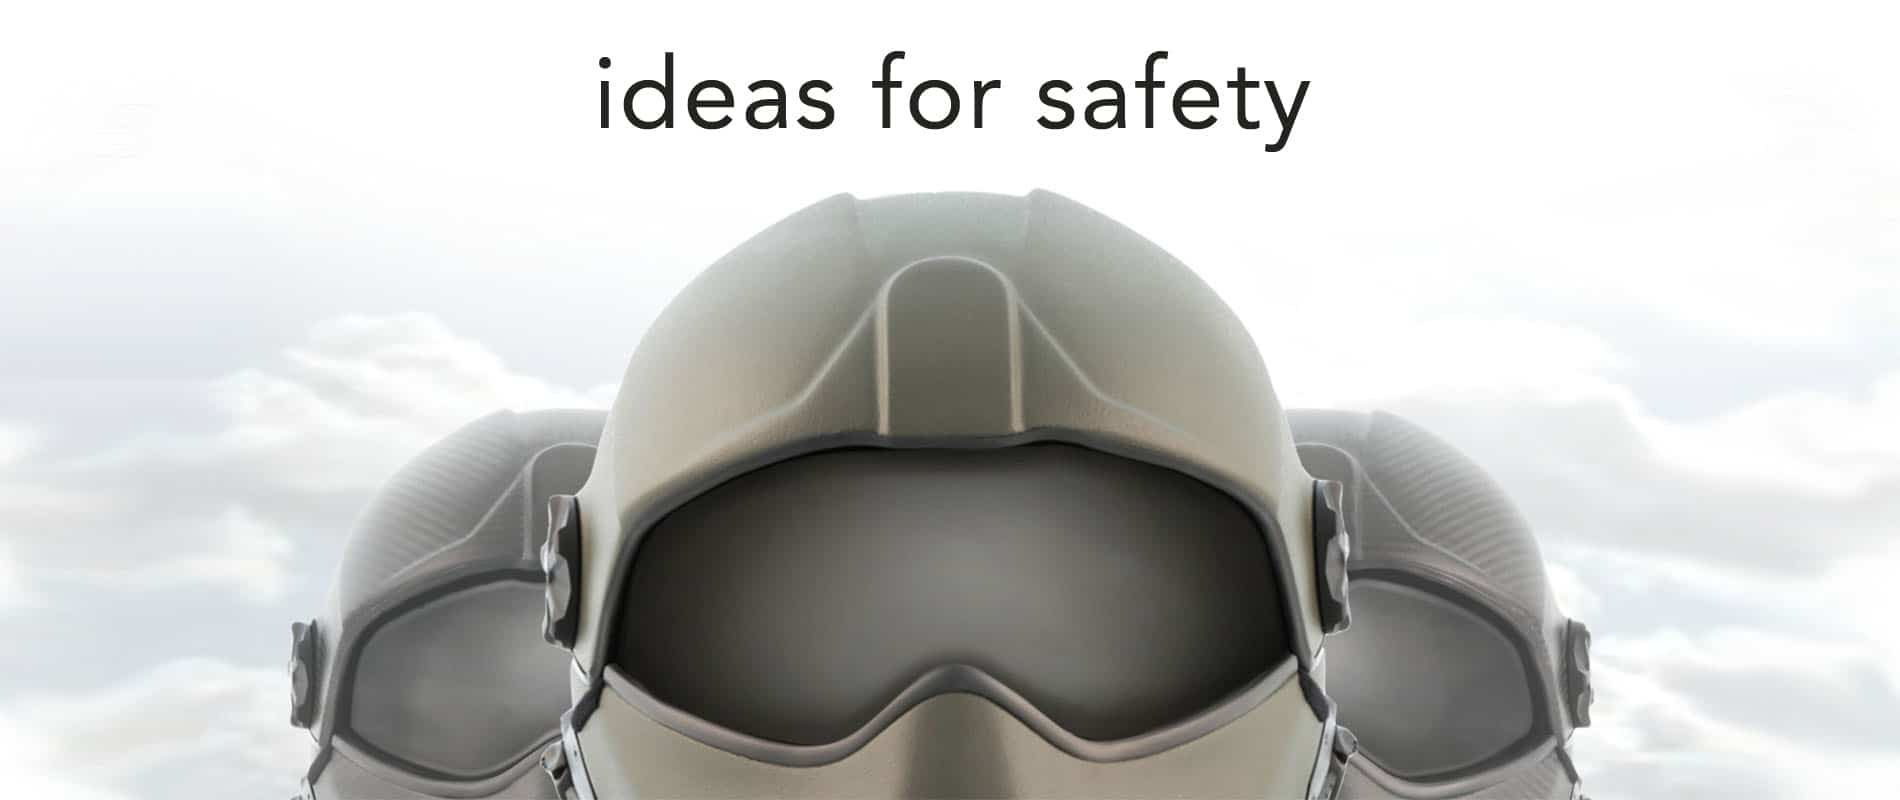 helicopter helmets